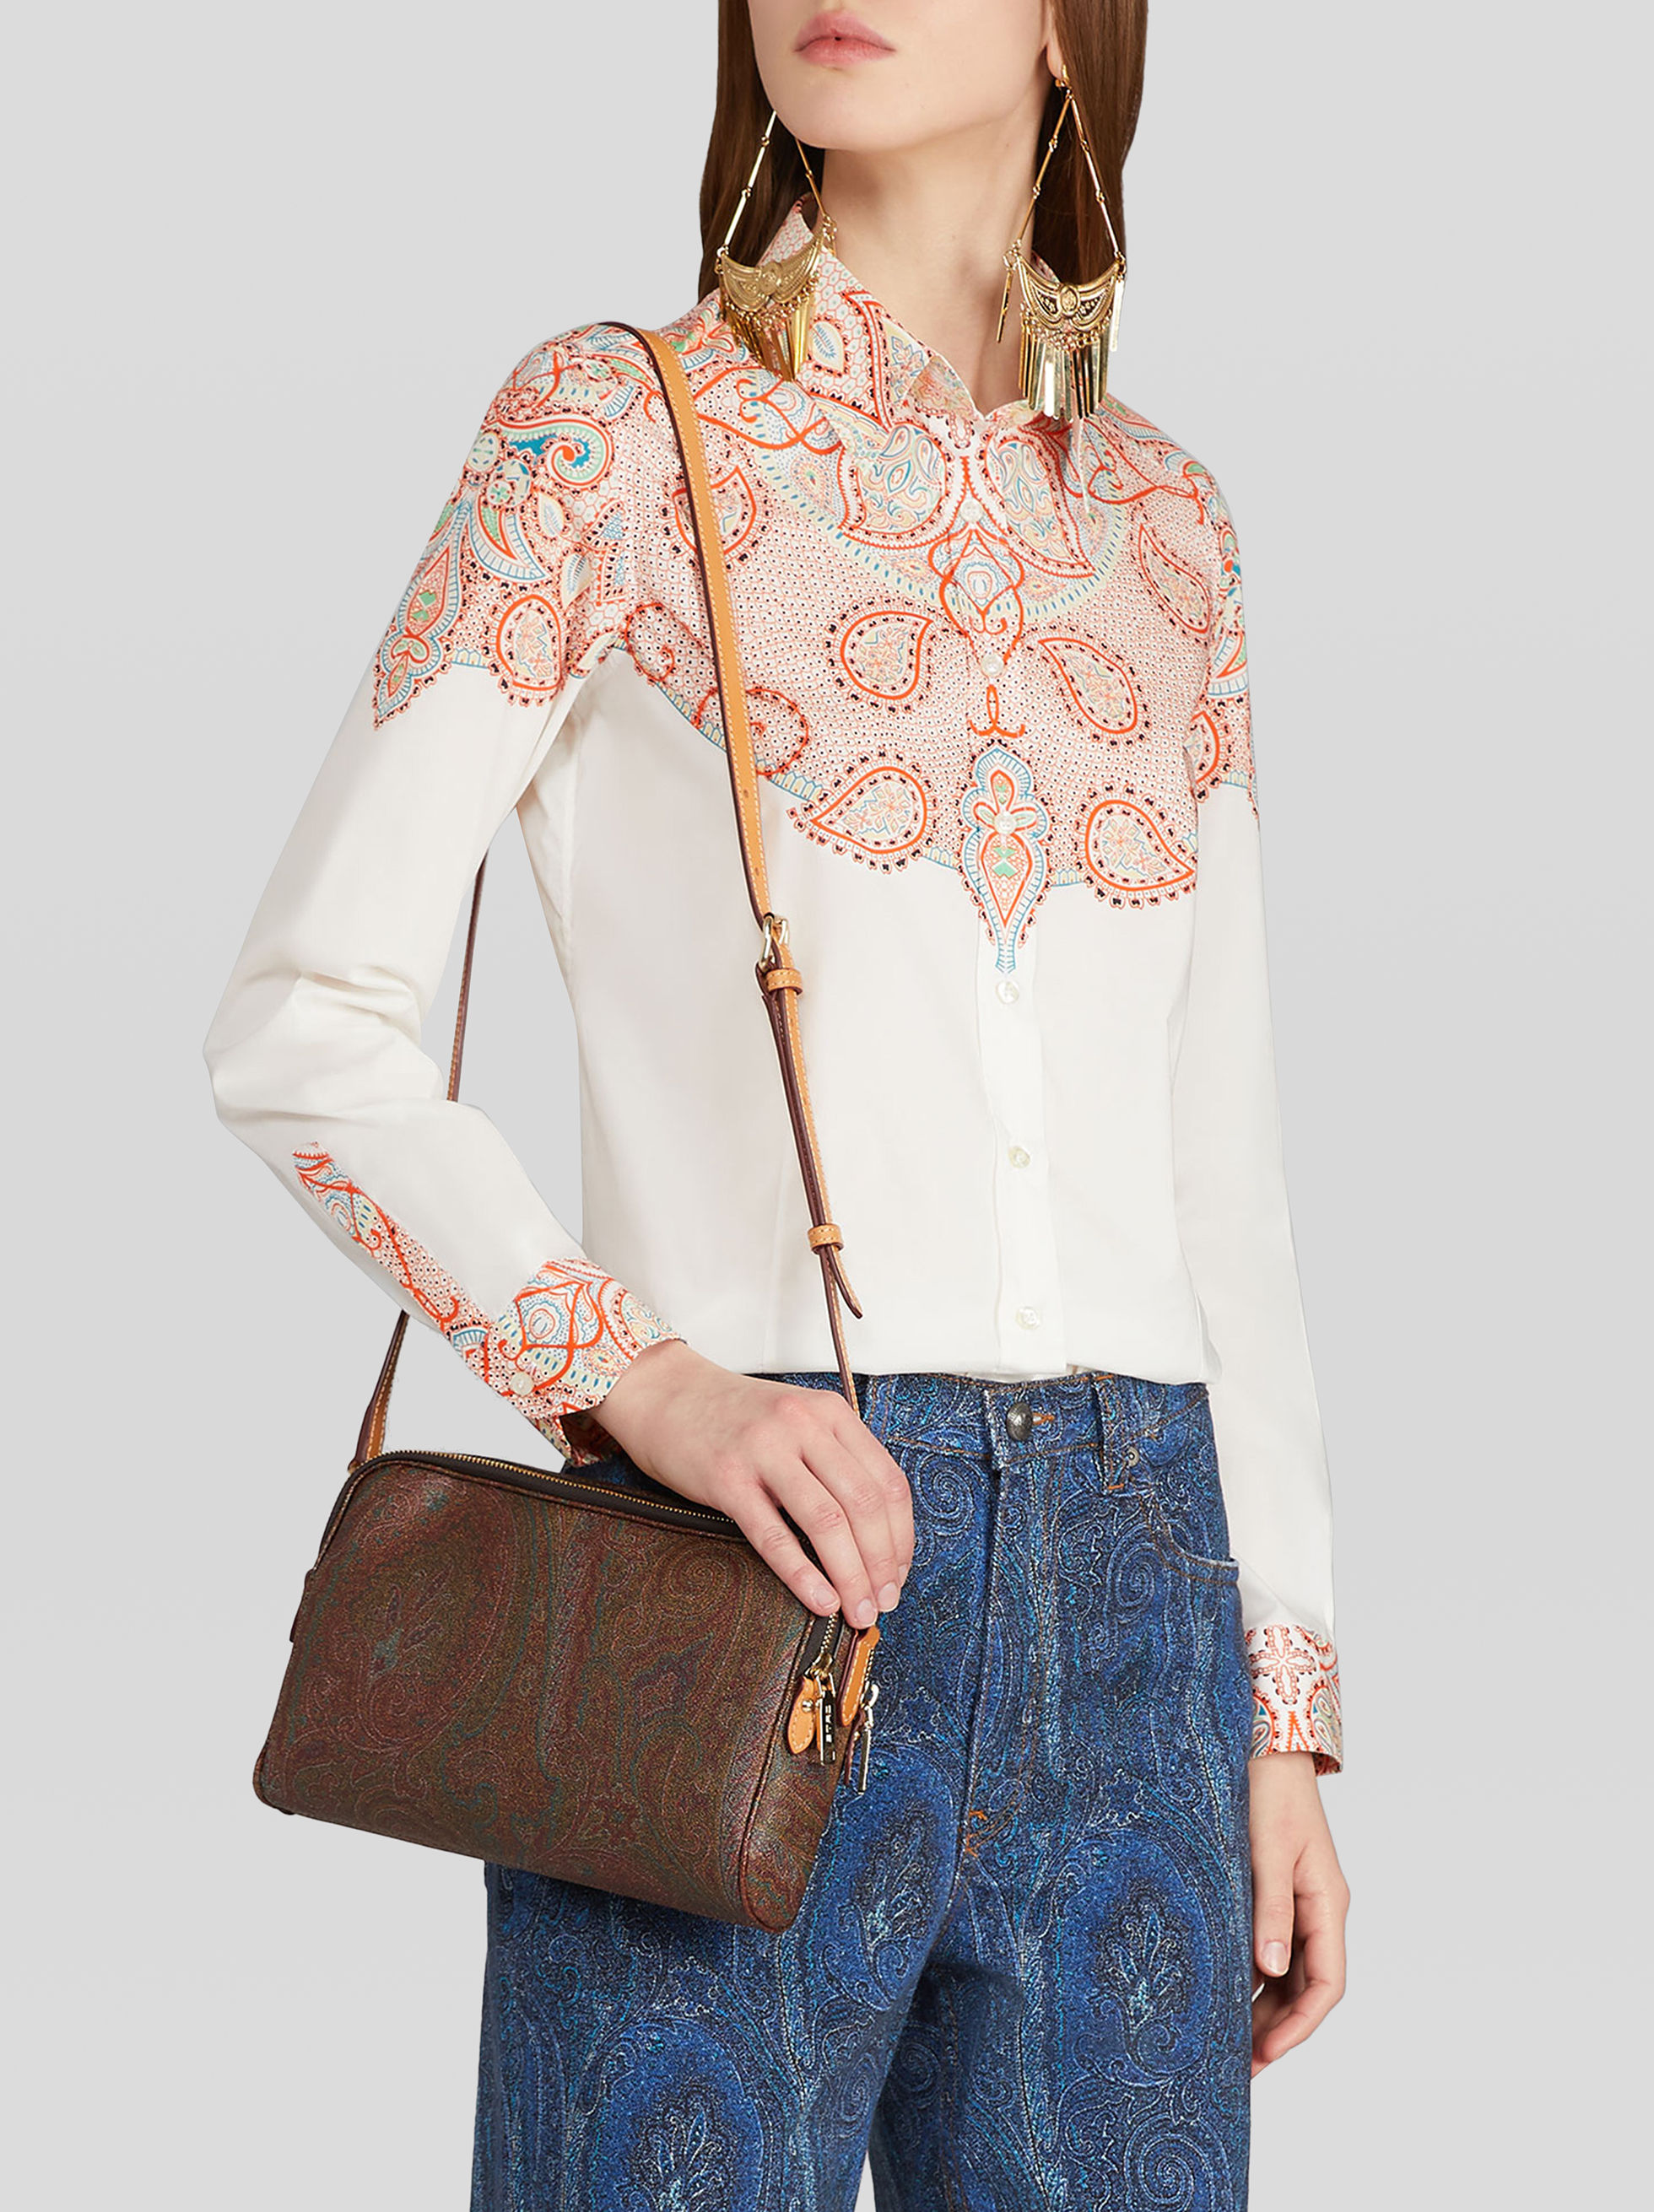 SHOULDER BAG IN PAISLEY FABRIC